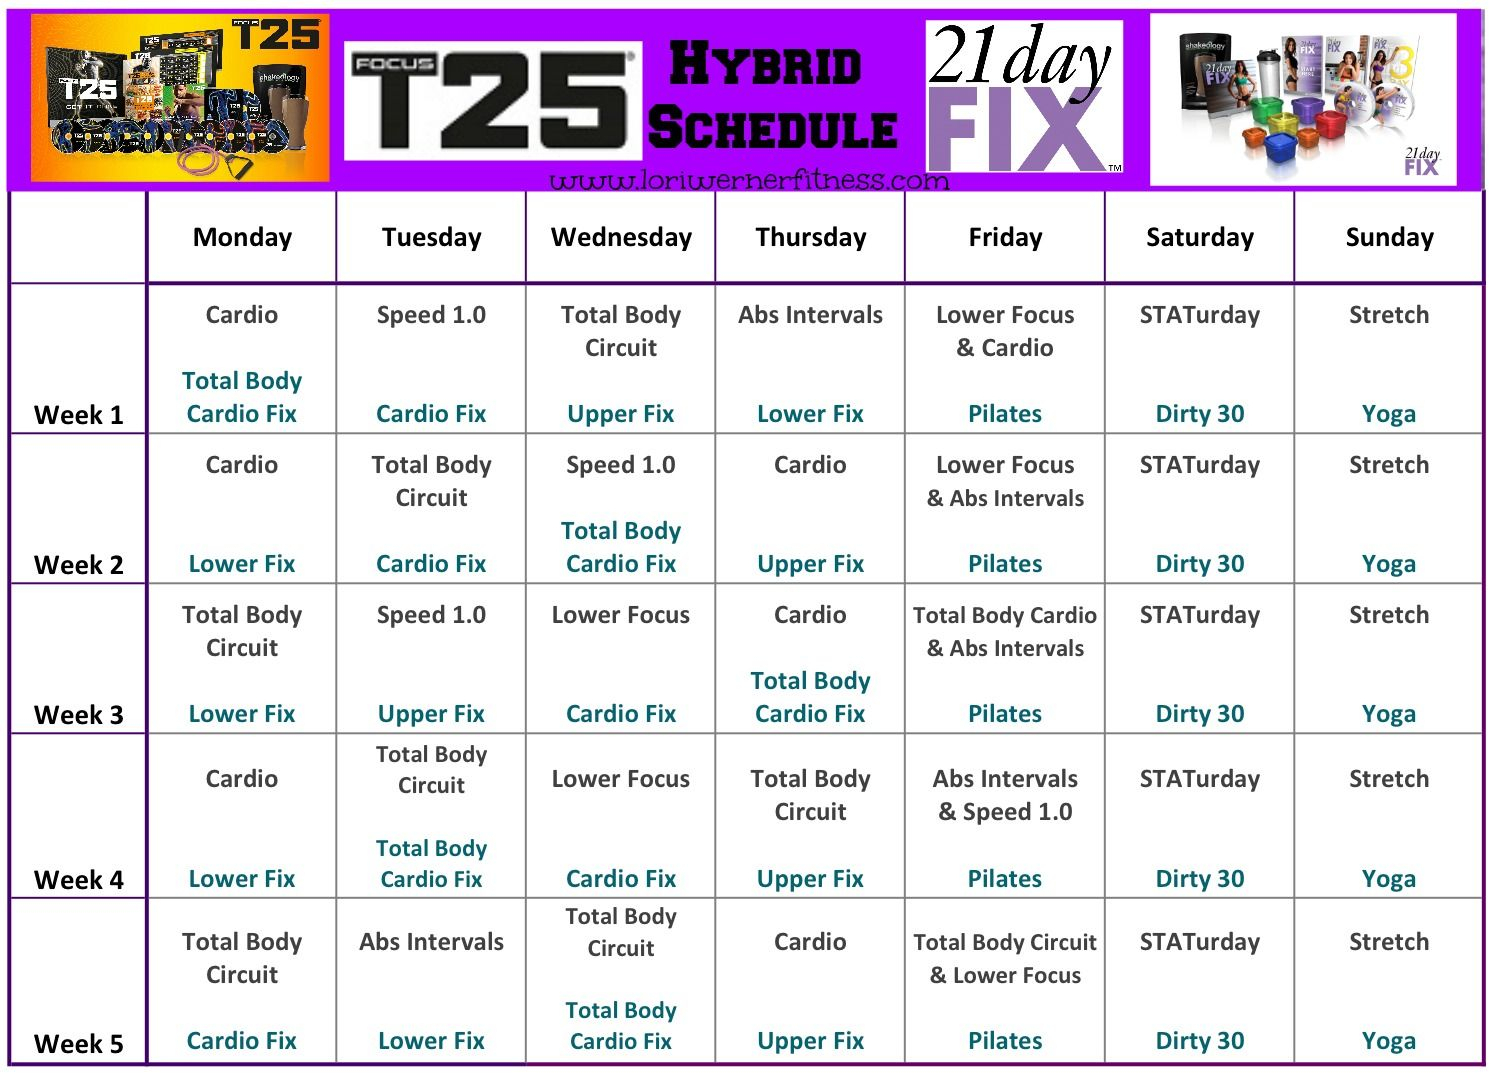 Pin By Cheryl Andrews On Getting Healthy | 21 Day Fix regarding 21 Day Fix Hybrid Calendar